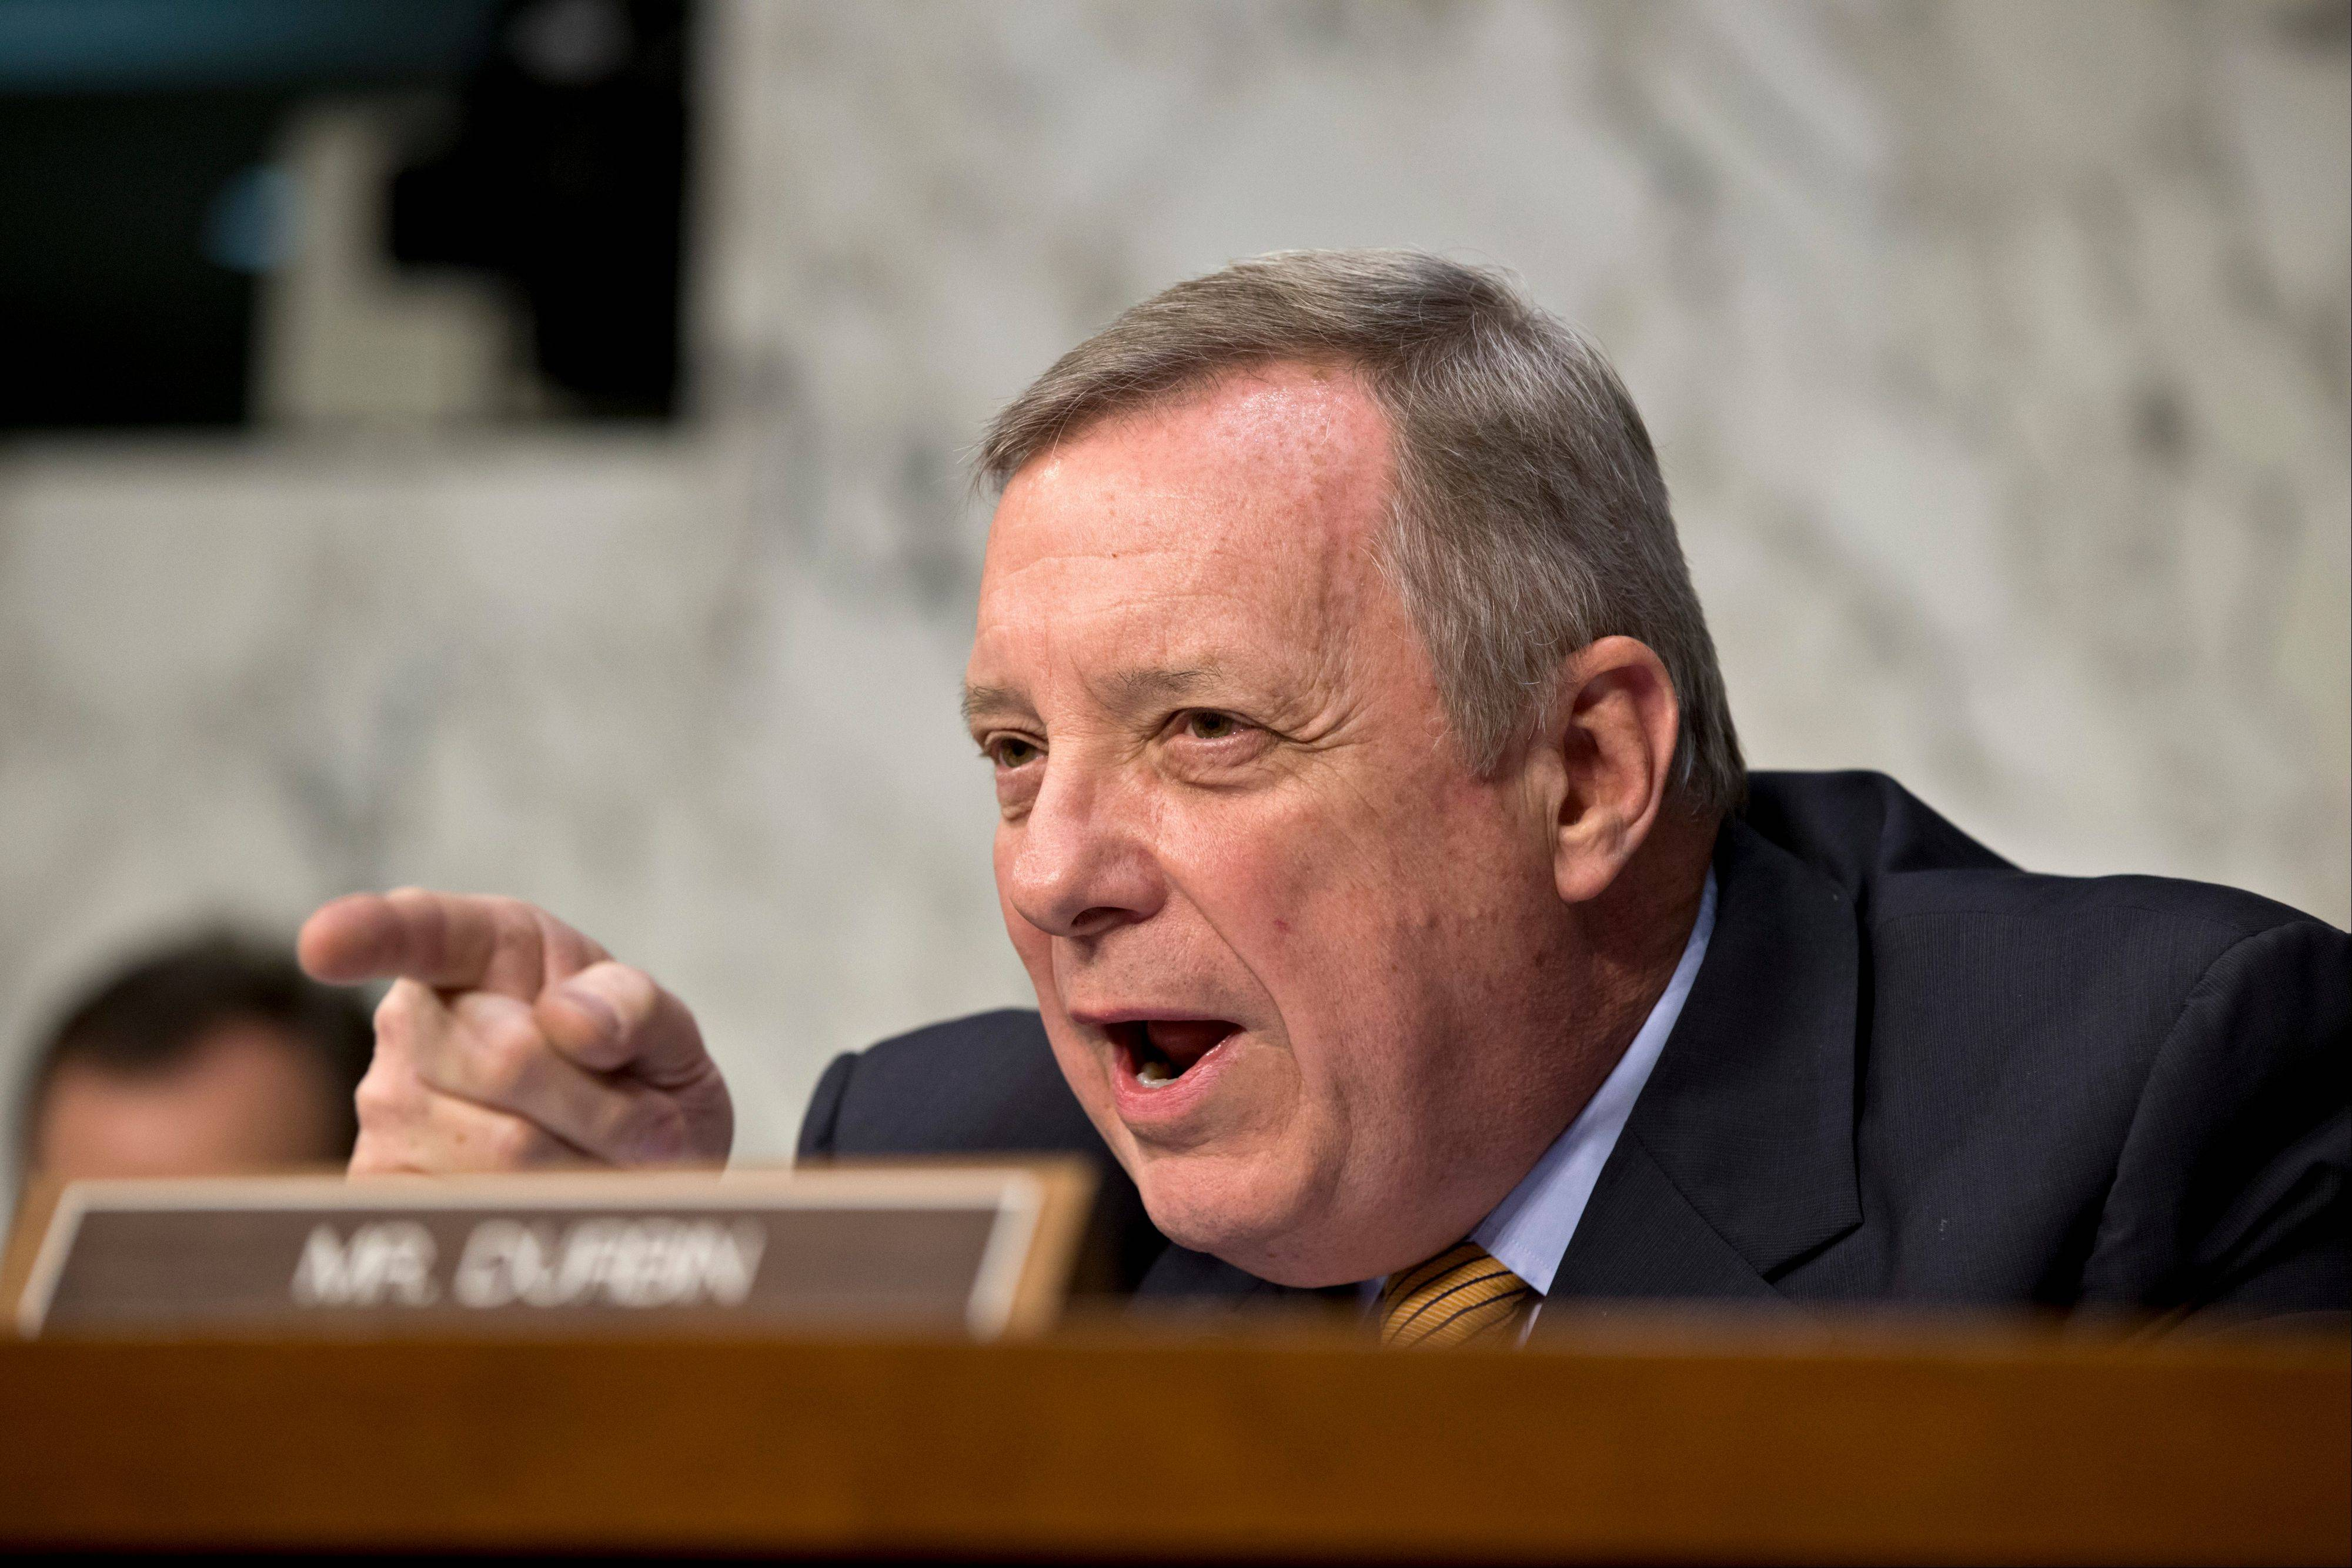 Illinois Sen. Dick Durbin is pushing for higher wages and trying to crack down on companies that use H-1B visas to train workers in the U.S., then send them back overseas. Aides worked into the evening Monday April 8, 2013 on the high-tech visa issue, and senators were to resume meeting in person Tuesday after returning to Washington from a two-week spring recess.